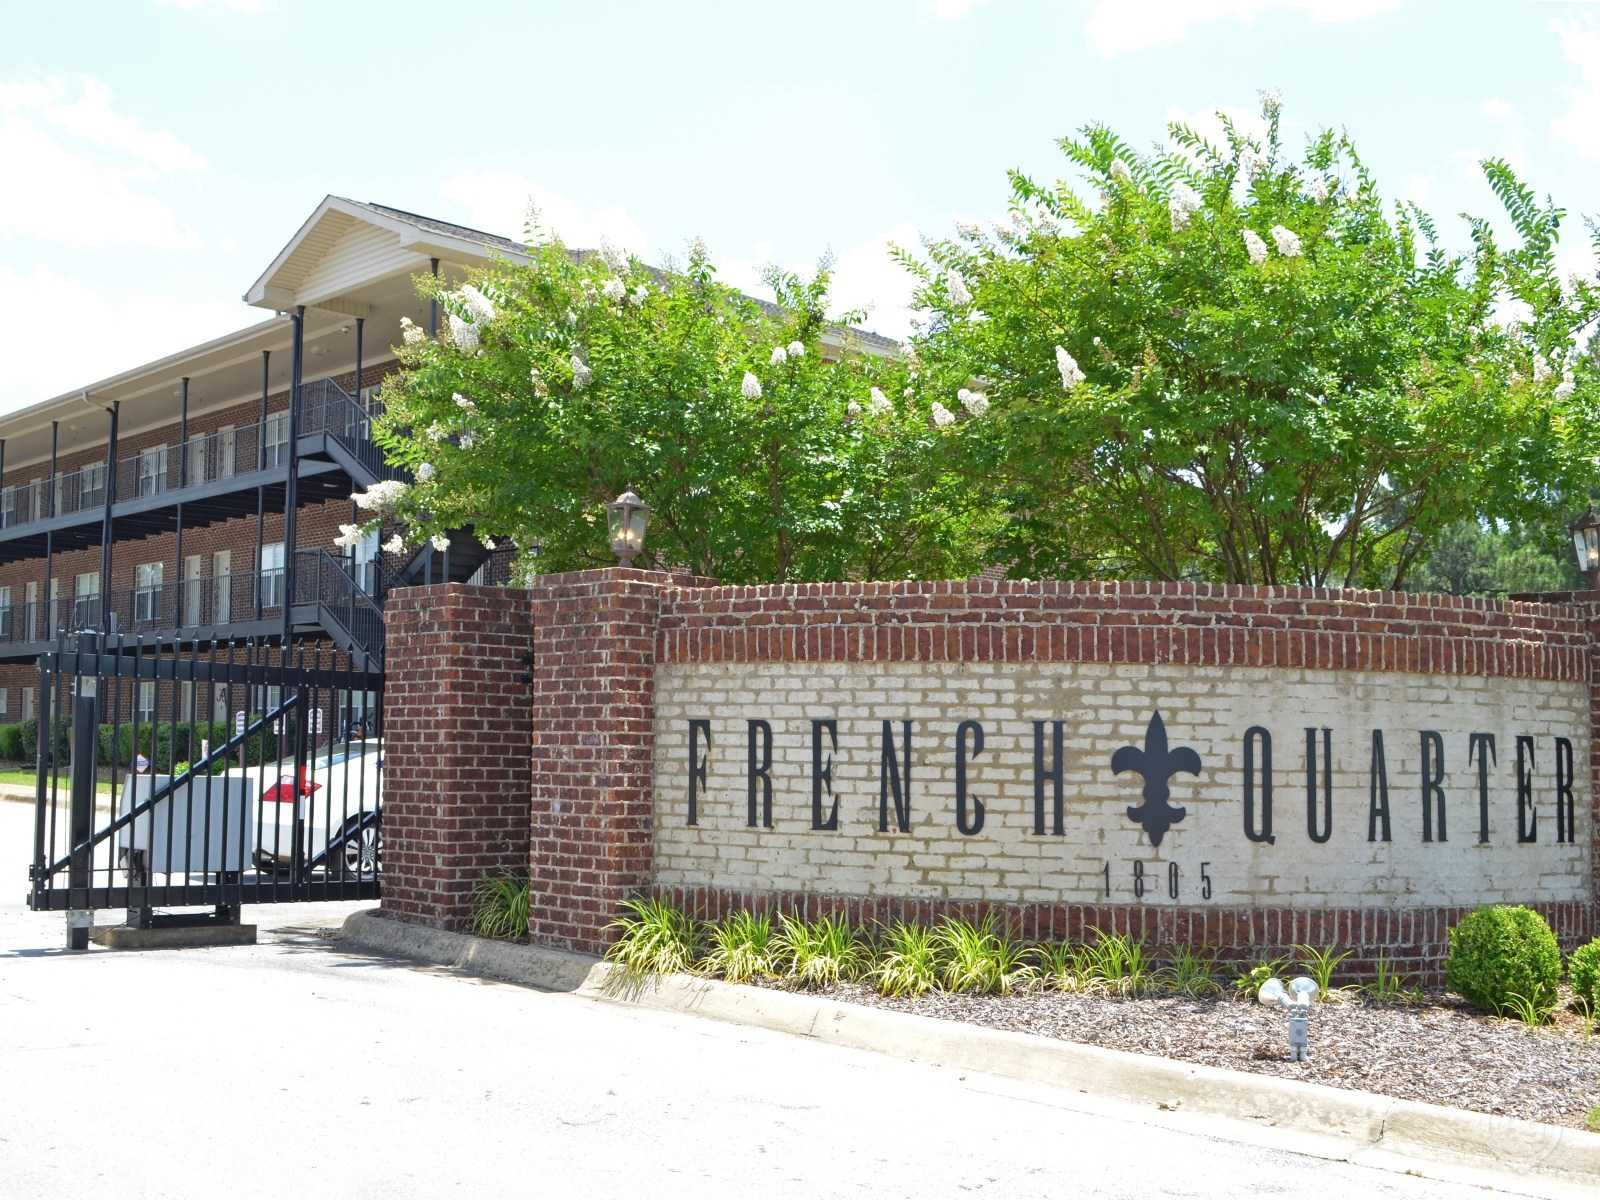 French Quarter Apartments - 1805 8th Ave, Tuscaloosa, AL 35401 - Zumper